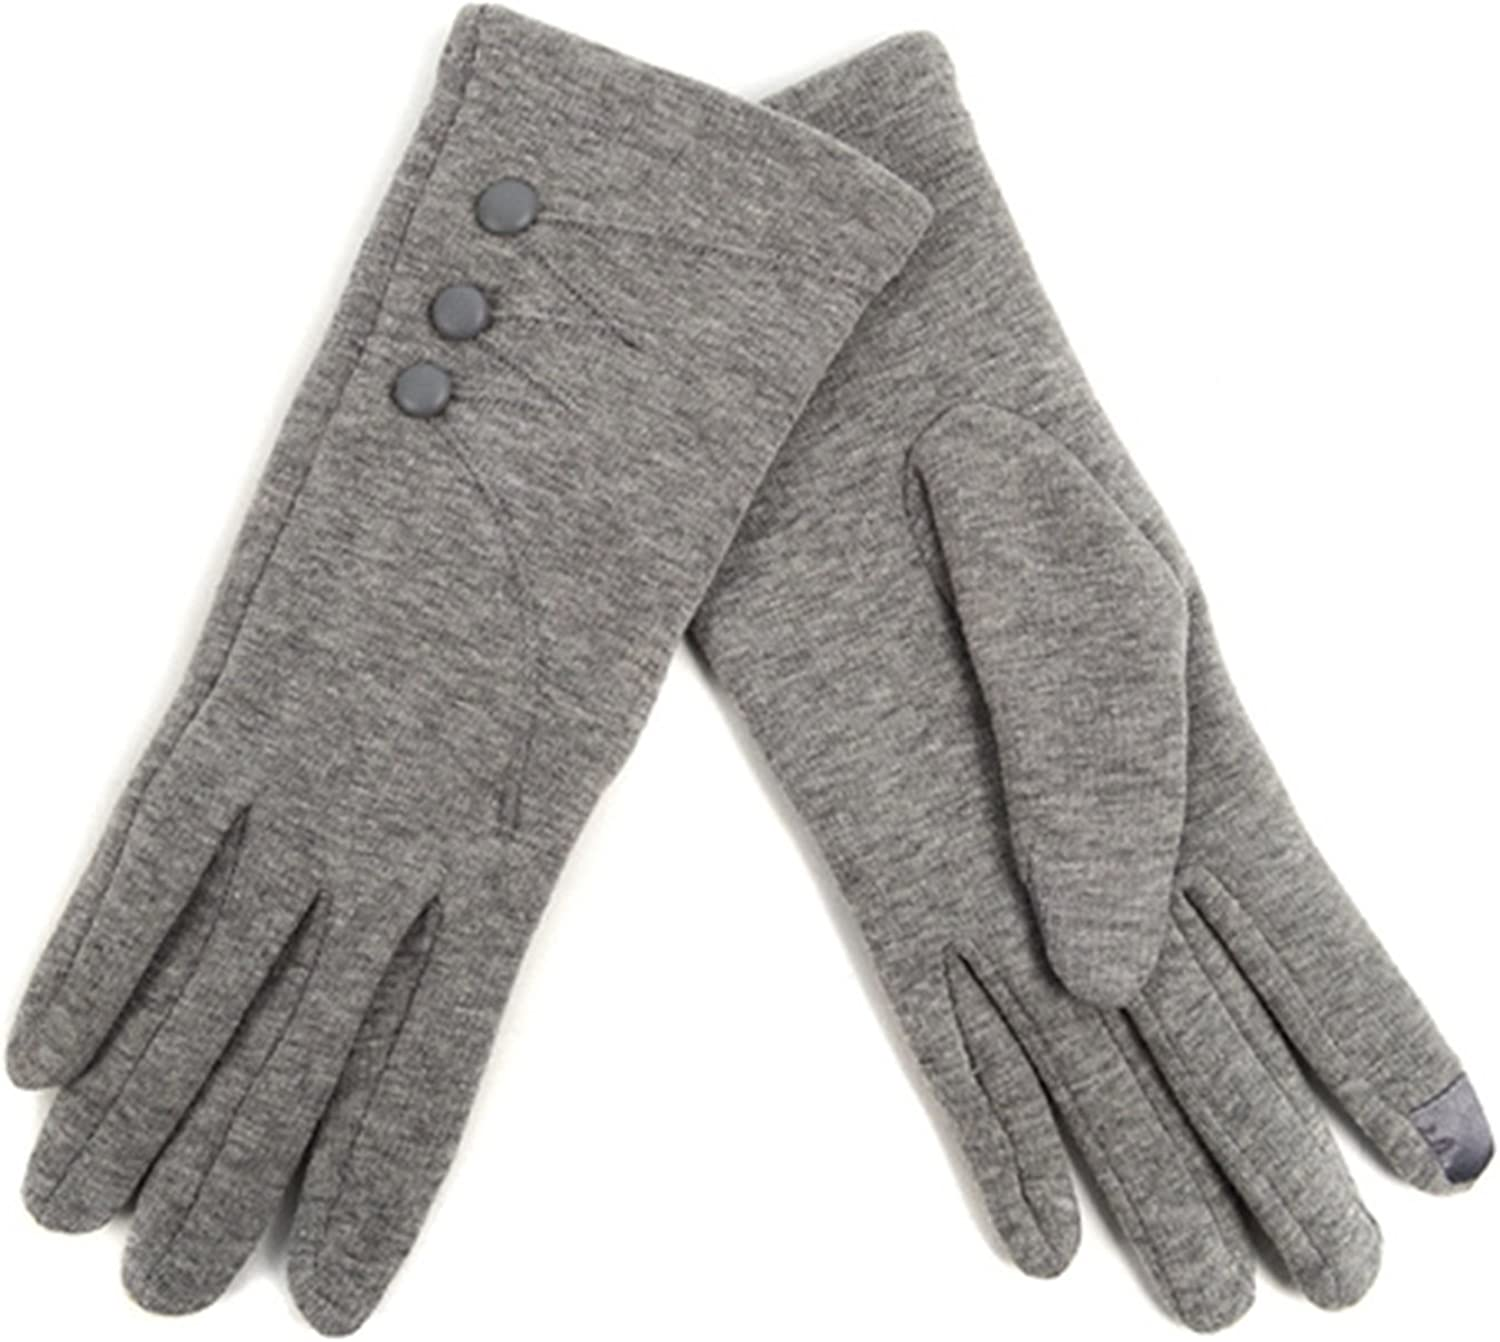 Women's Grey Stylish Touch Screen Gloves with Button Accent & Fleece Lining SM